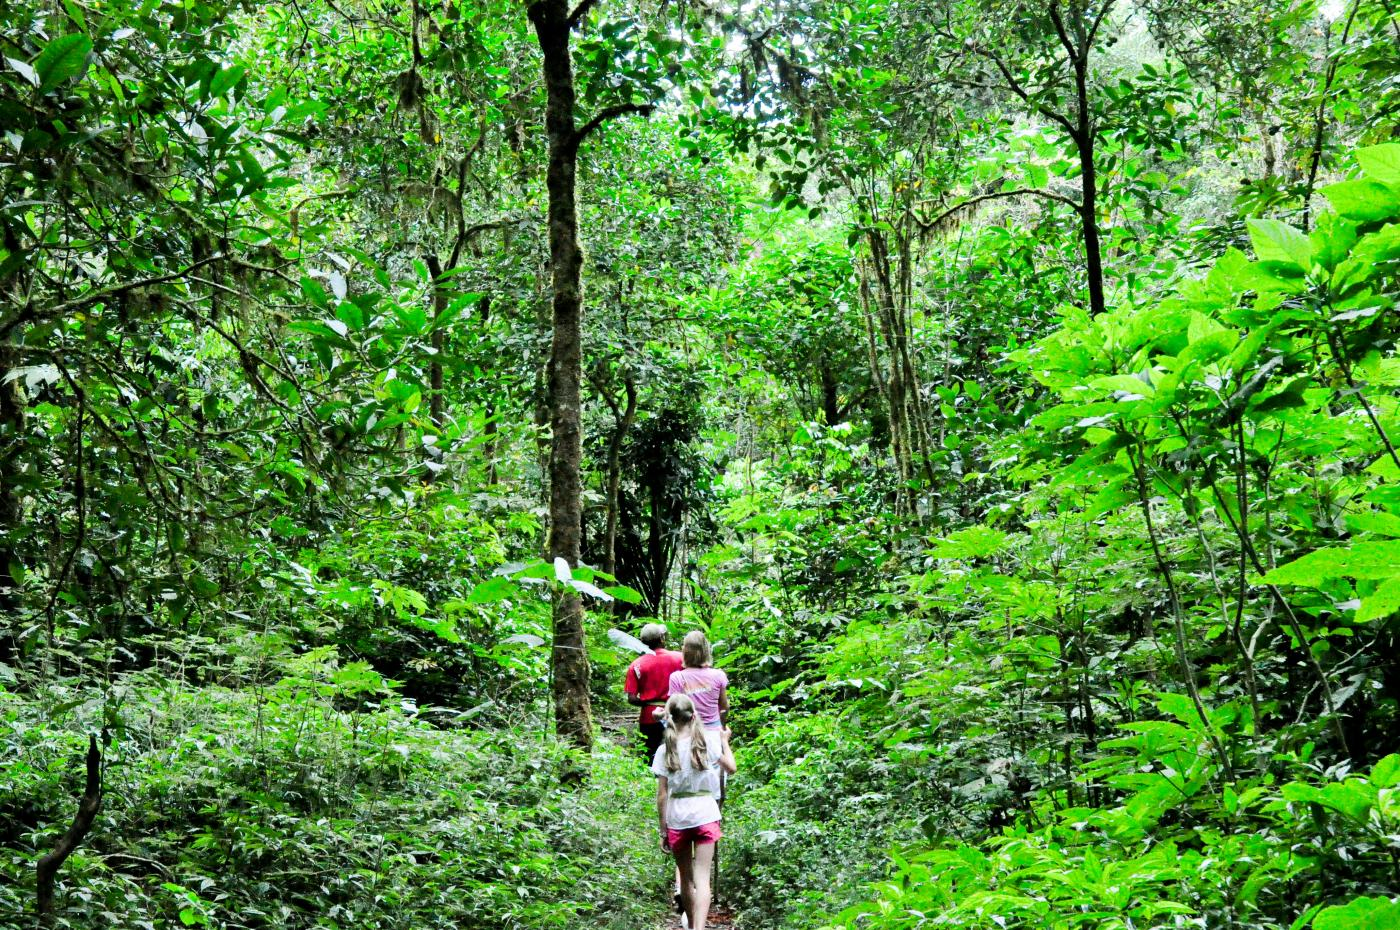 jungle trekking experience 2 days jungle trekking, the most popular for sumatran orangutan treks,this the easiest and fastes way to get real experience staying in the sumatran rainforest adventure, more 4 days tour elephant and .